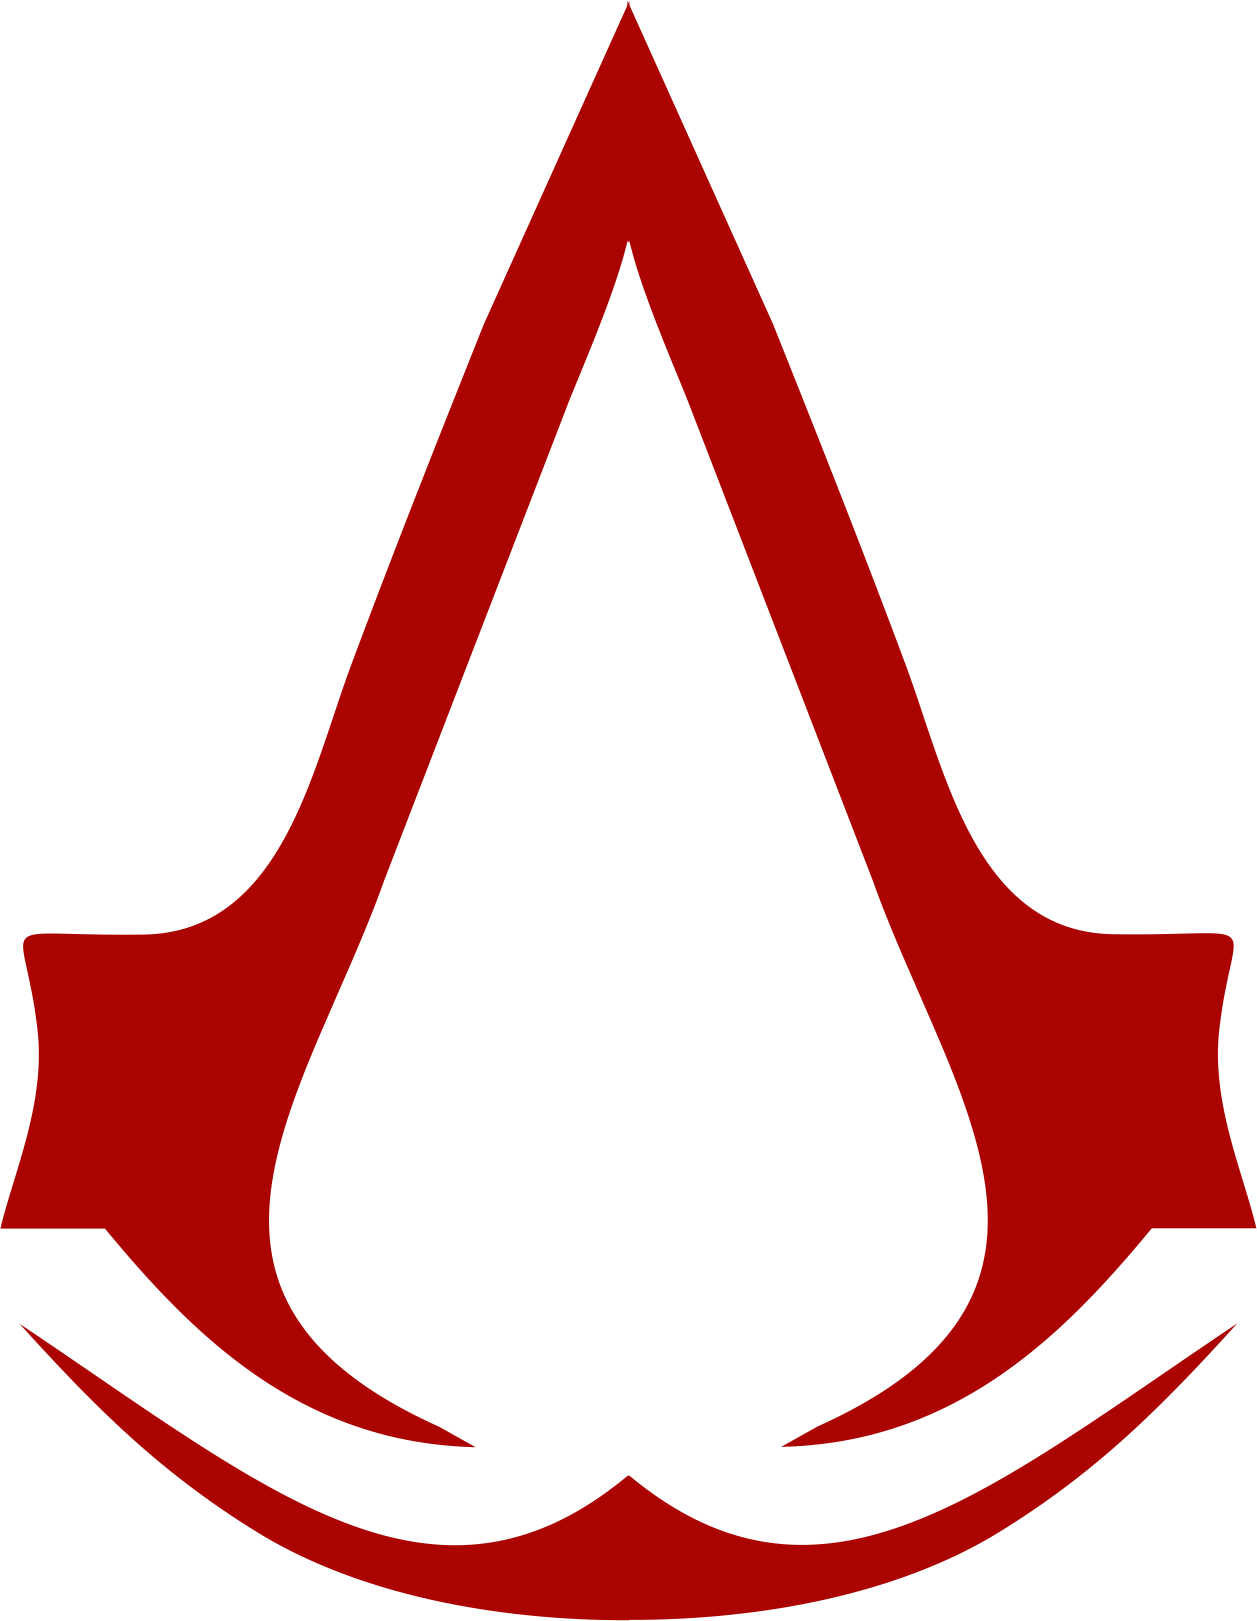 Assassins creed transparent png images stickpng assassins creed a logo buycottarizona